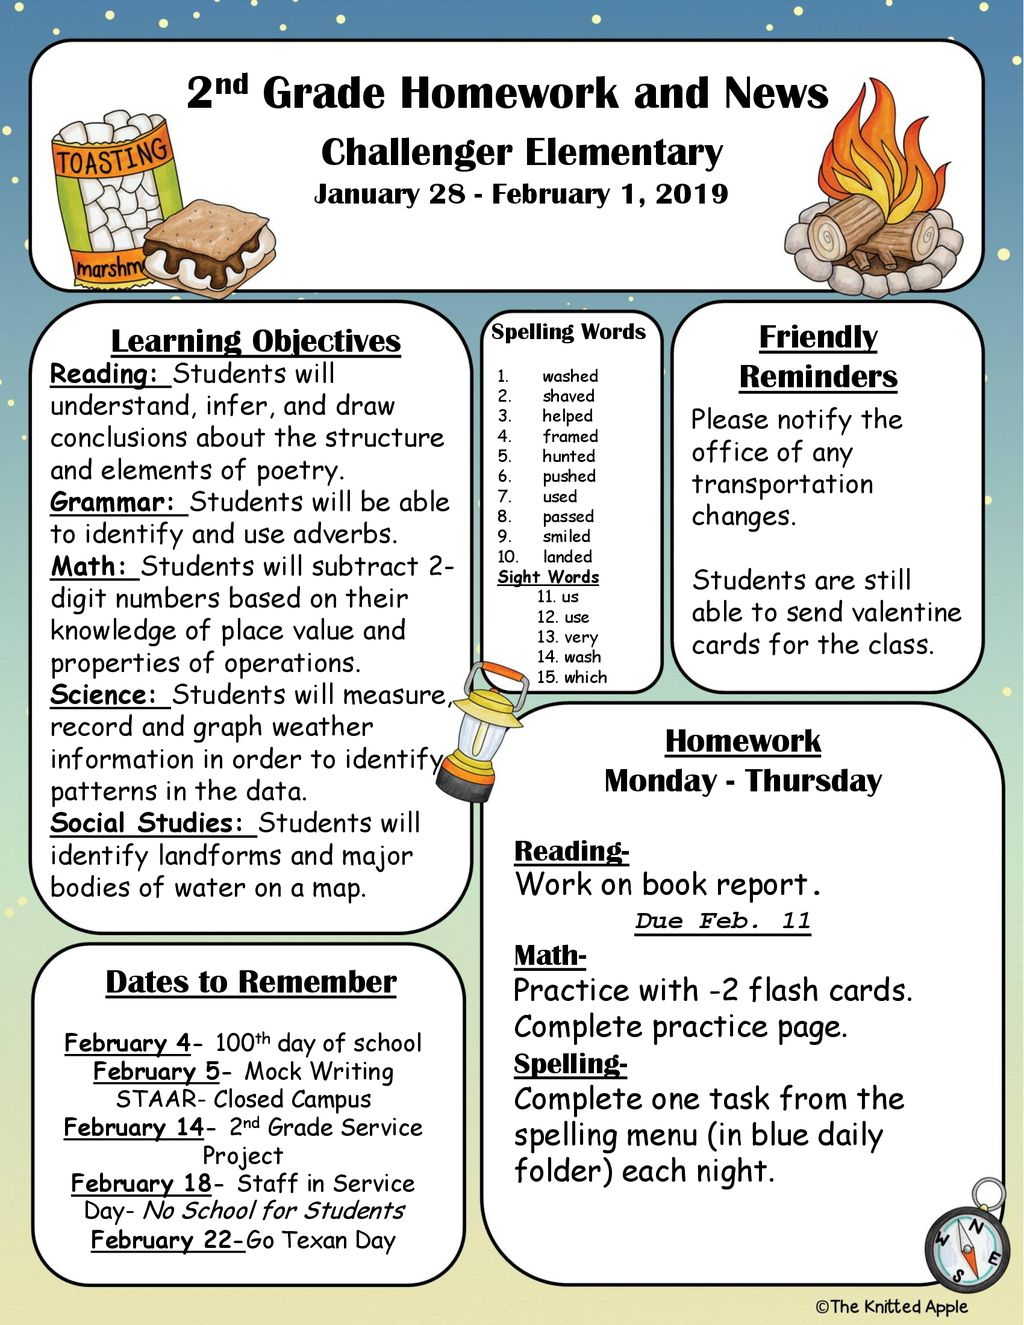 2nd Grade Homework and News - ppt download